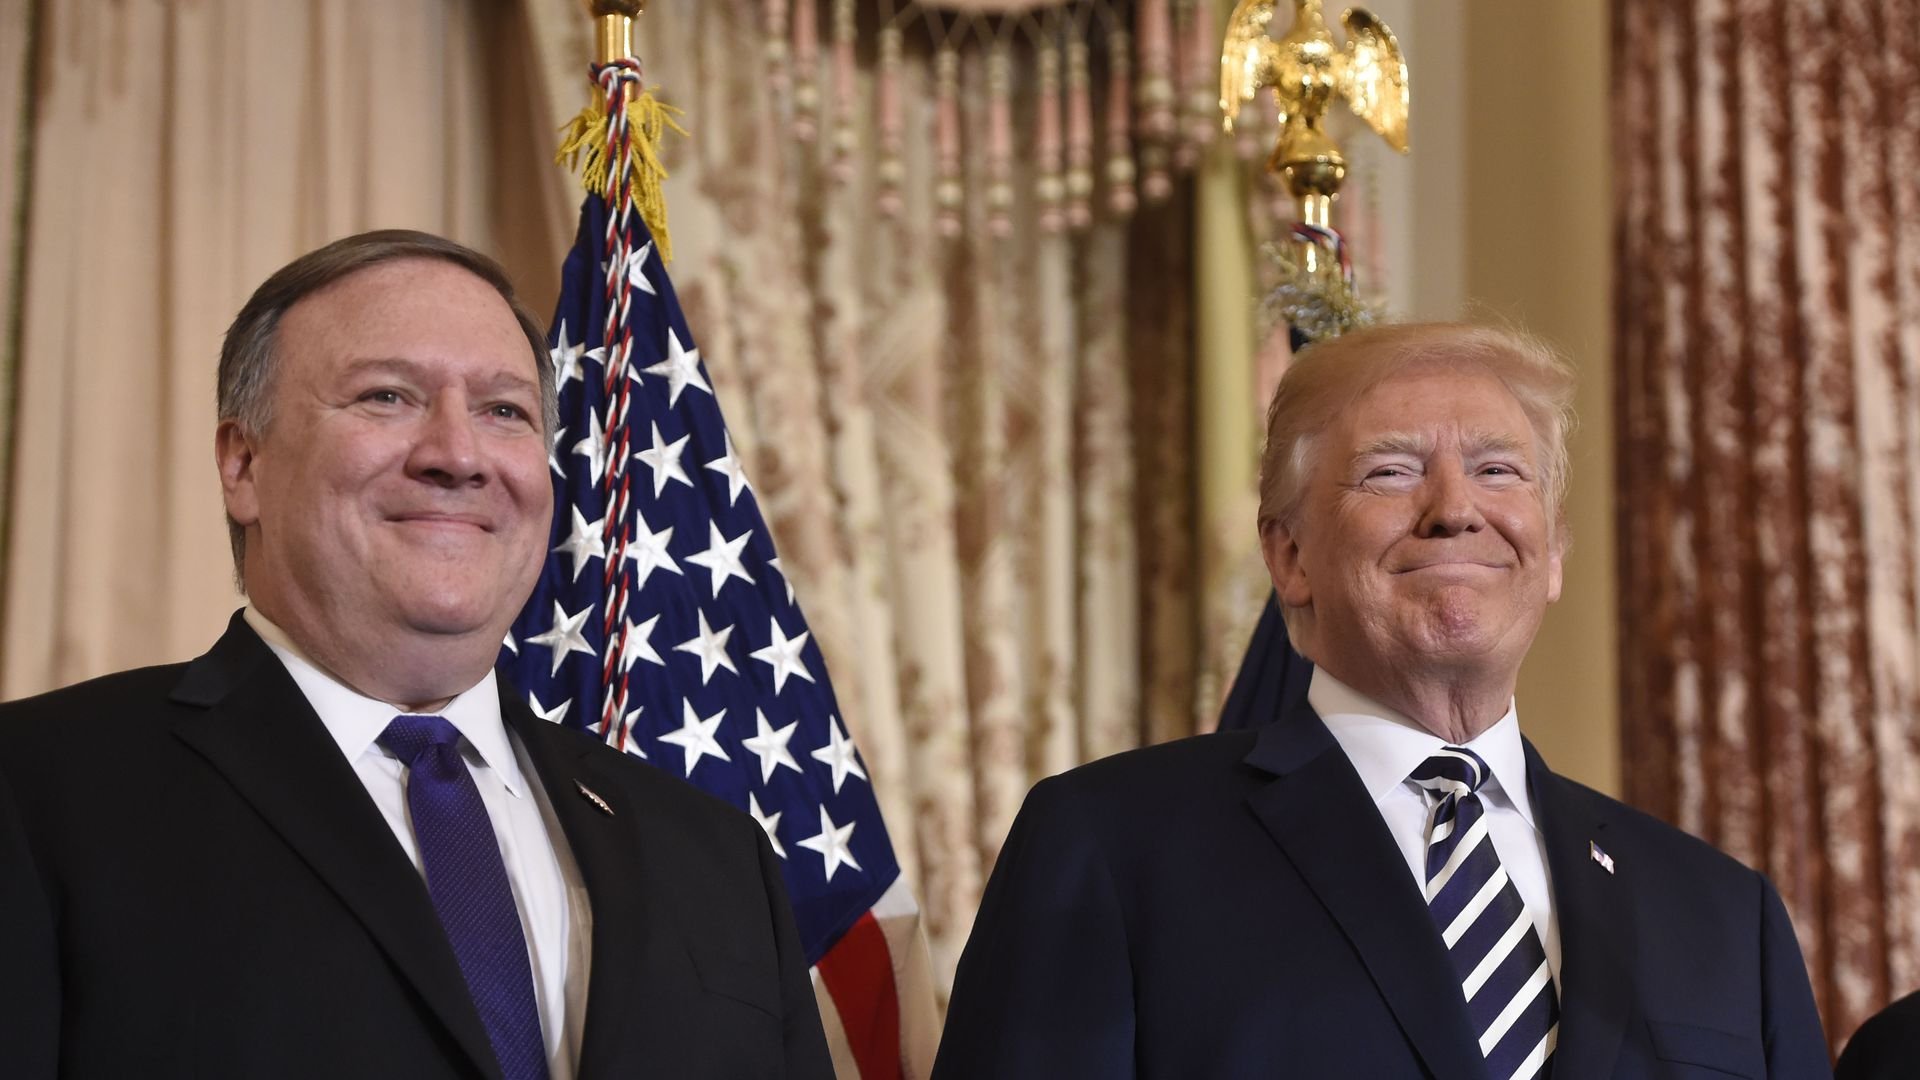 Mike Pompeo and Trump stand before an American flag.